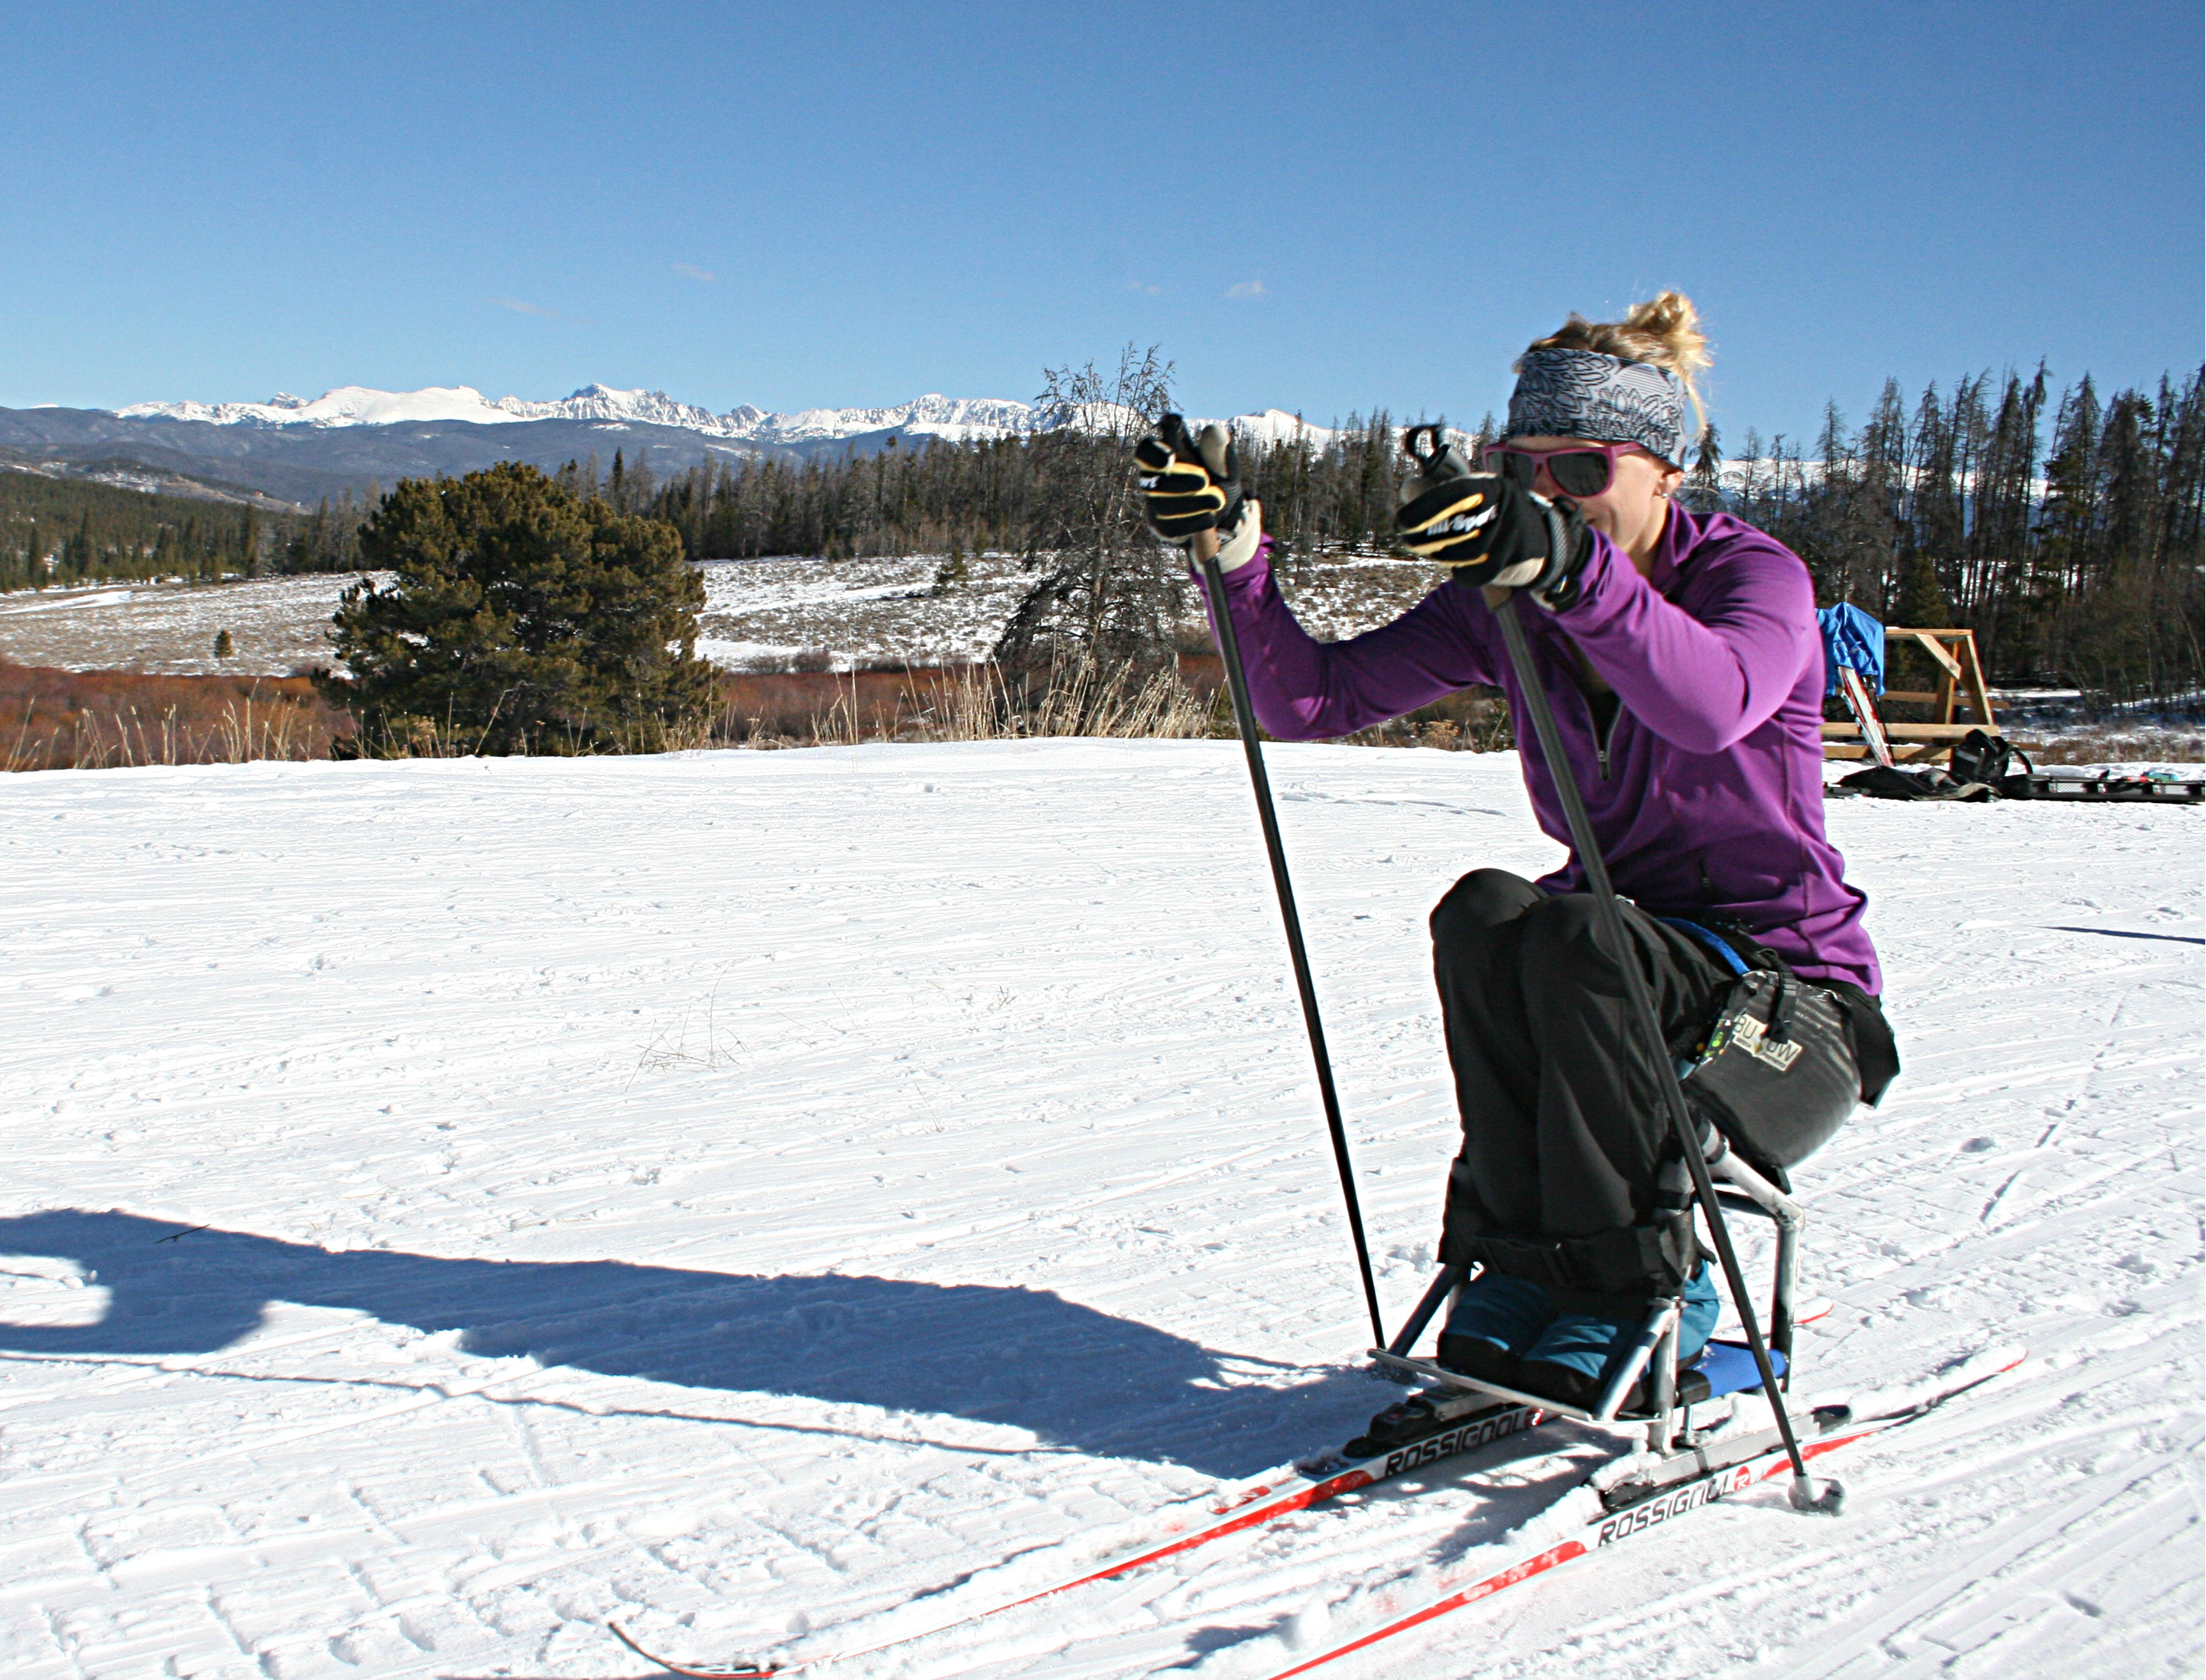 <p>Paralympic sitskier Beth Requist on a practice run at Colorado's Snow Mountain Ranch.</p>